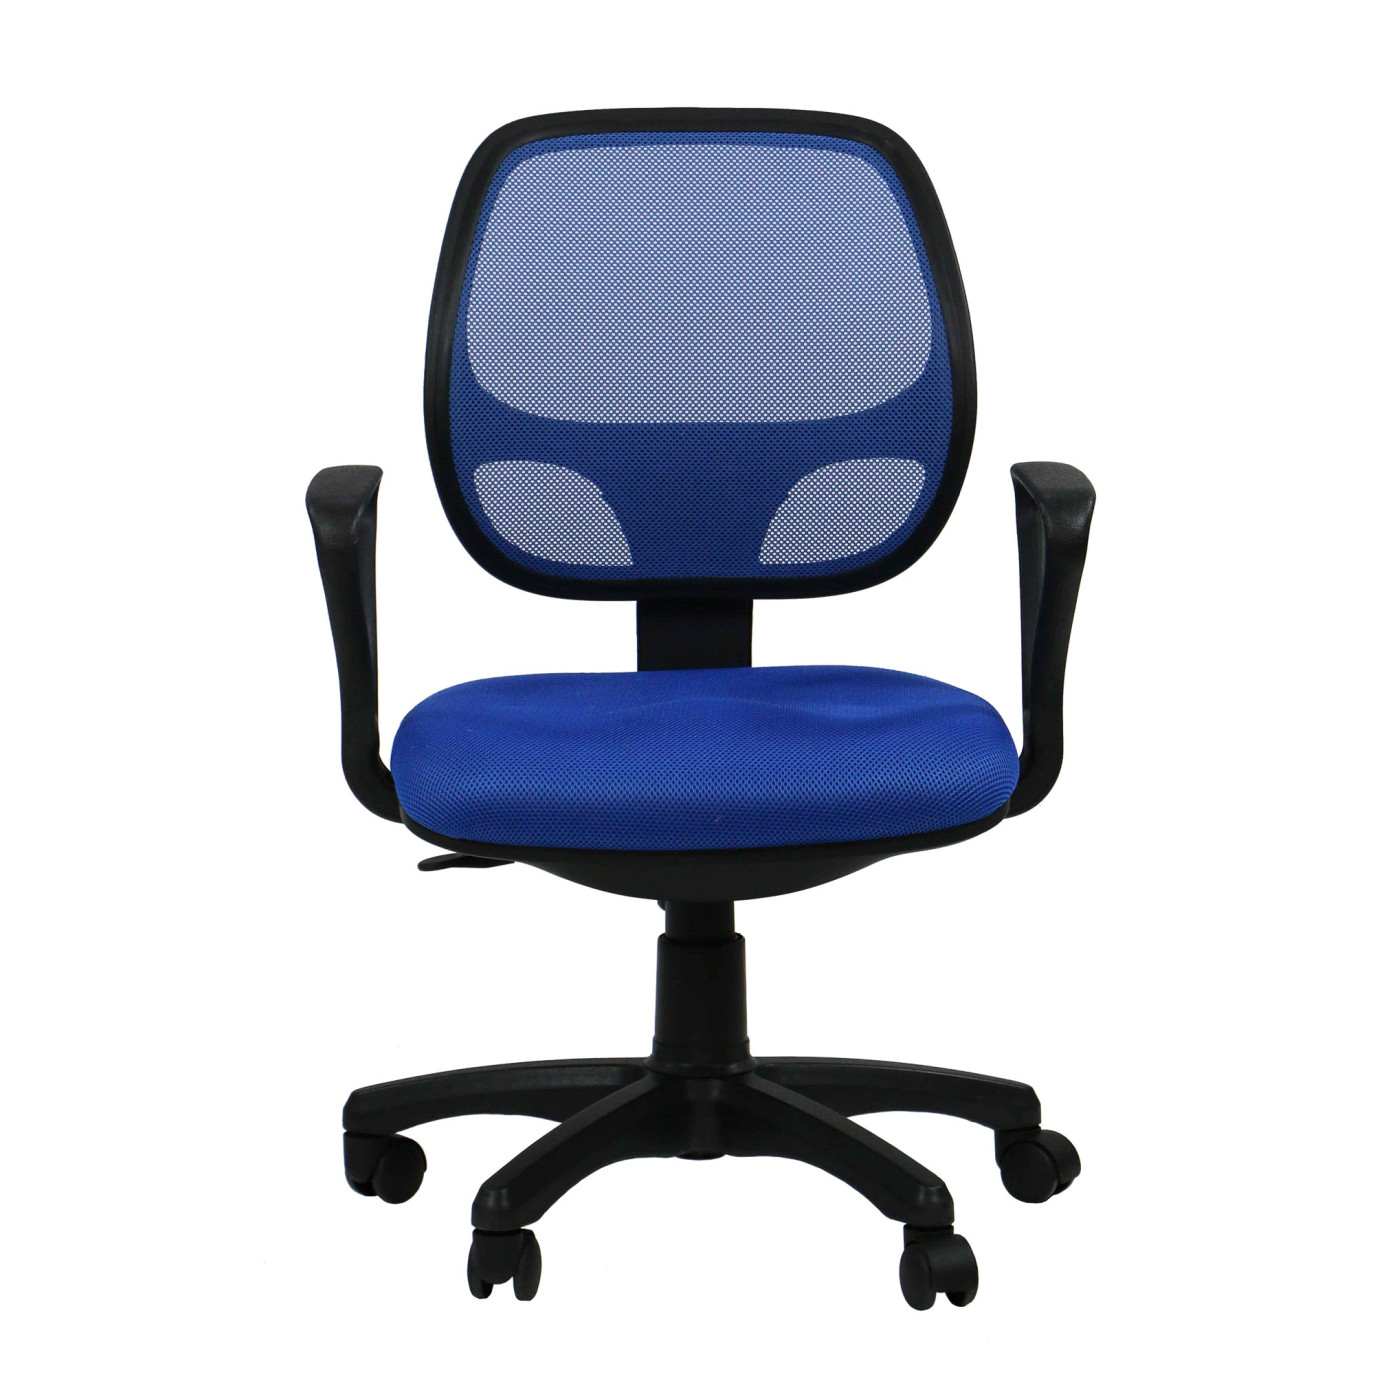 Rein Office Chair Furniture Amp Home D 233 Cor Fortytwo